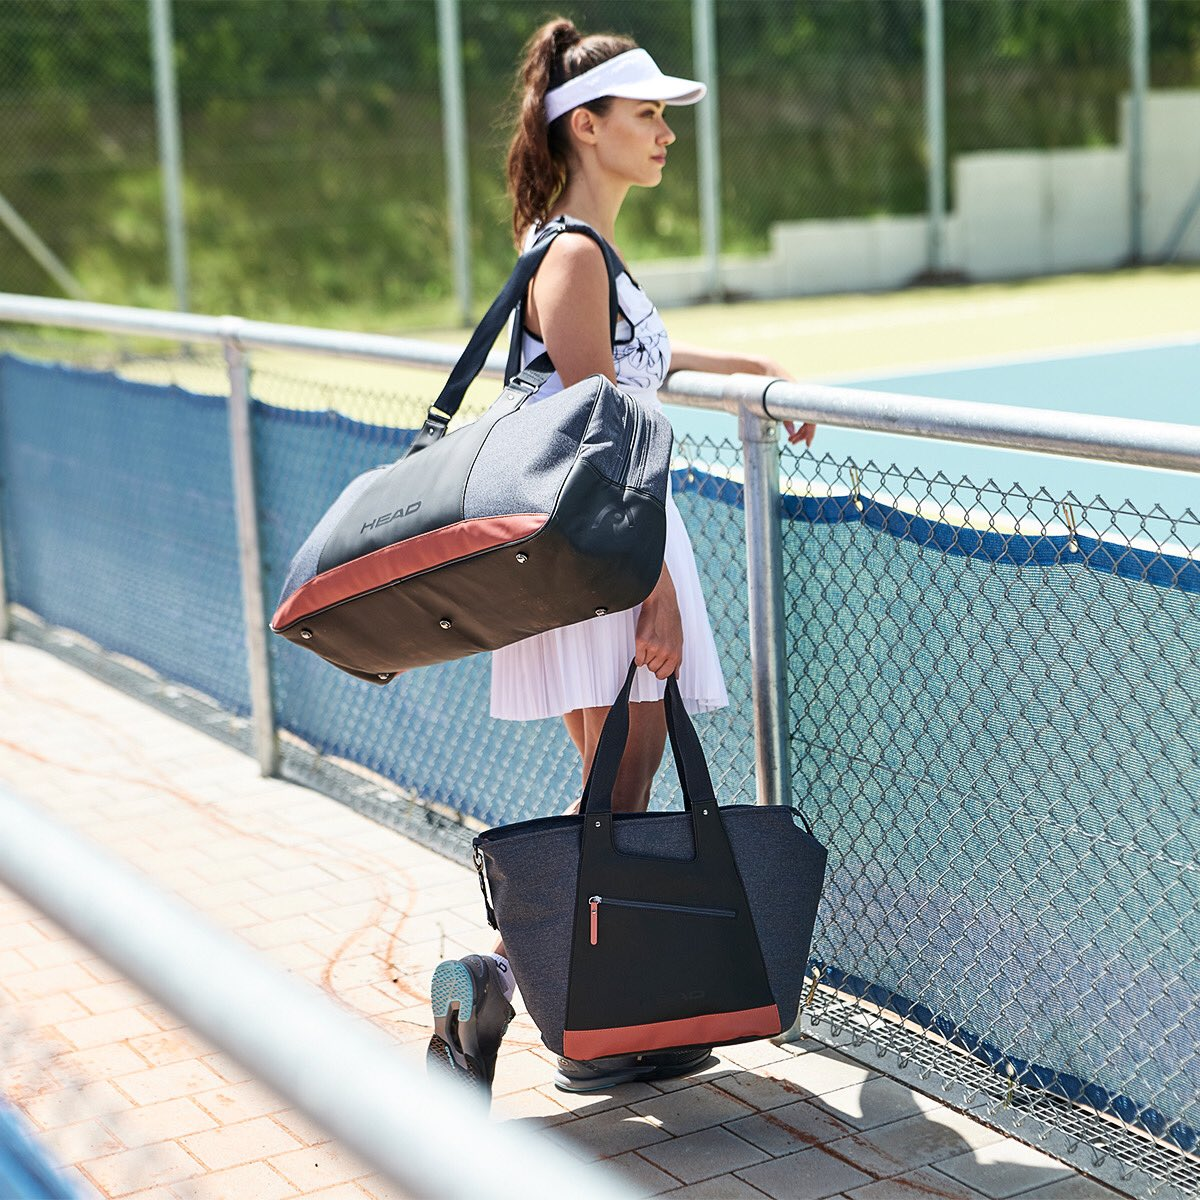 Be stylish on and off the court with the new Women's Court Bag and Tote Bag. Which one would you choose? 👜 #TeamHEAD https://t.co/DMUiClwzhL